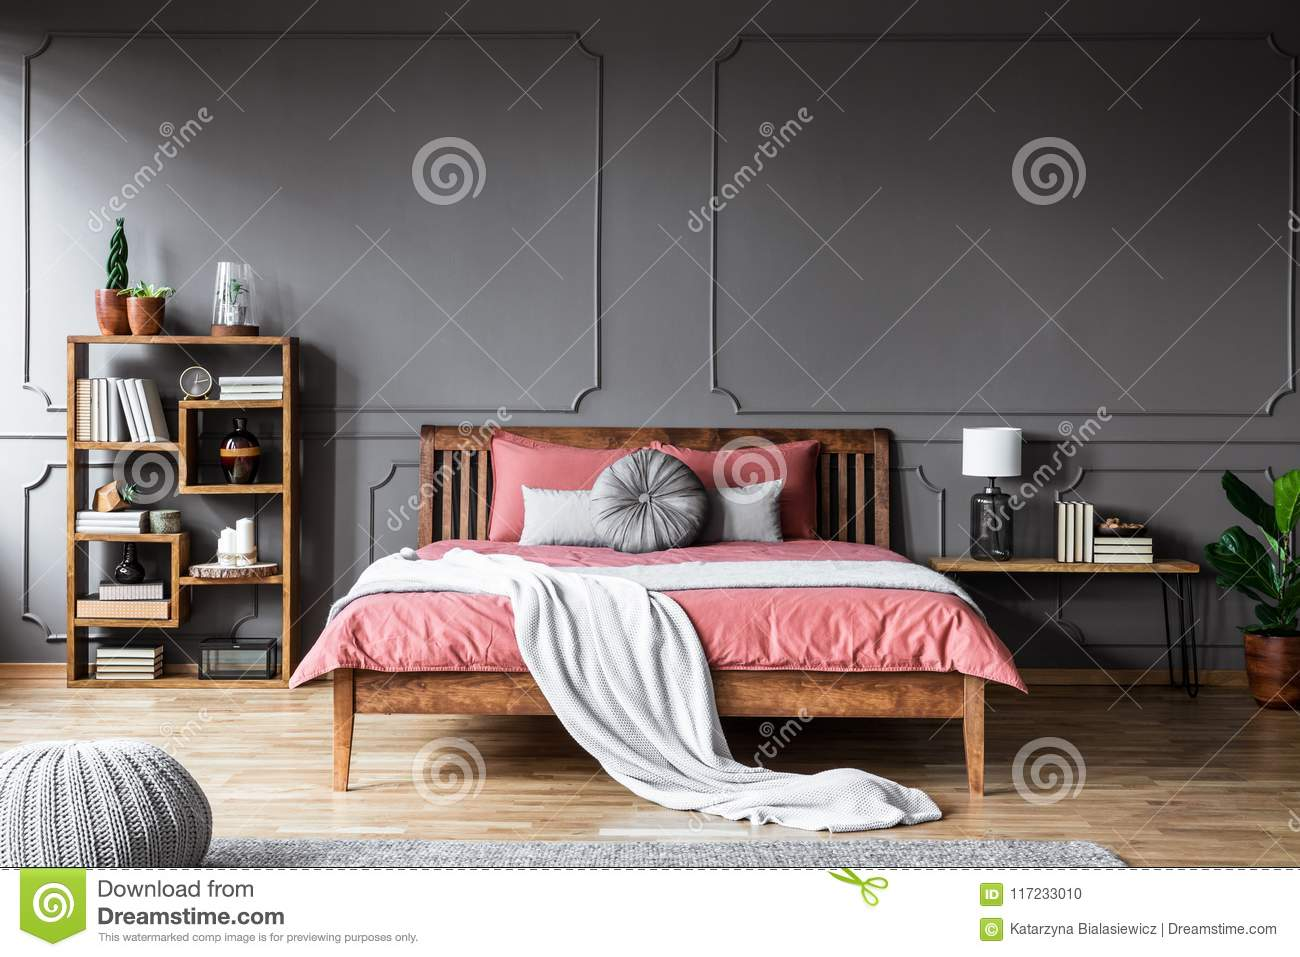 A large bed in a spacious, dark bedroom standing between a shelf